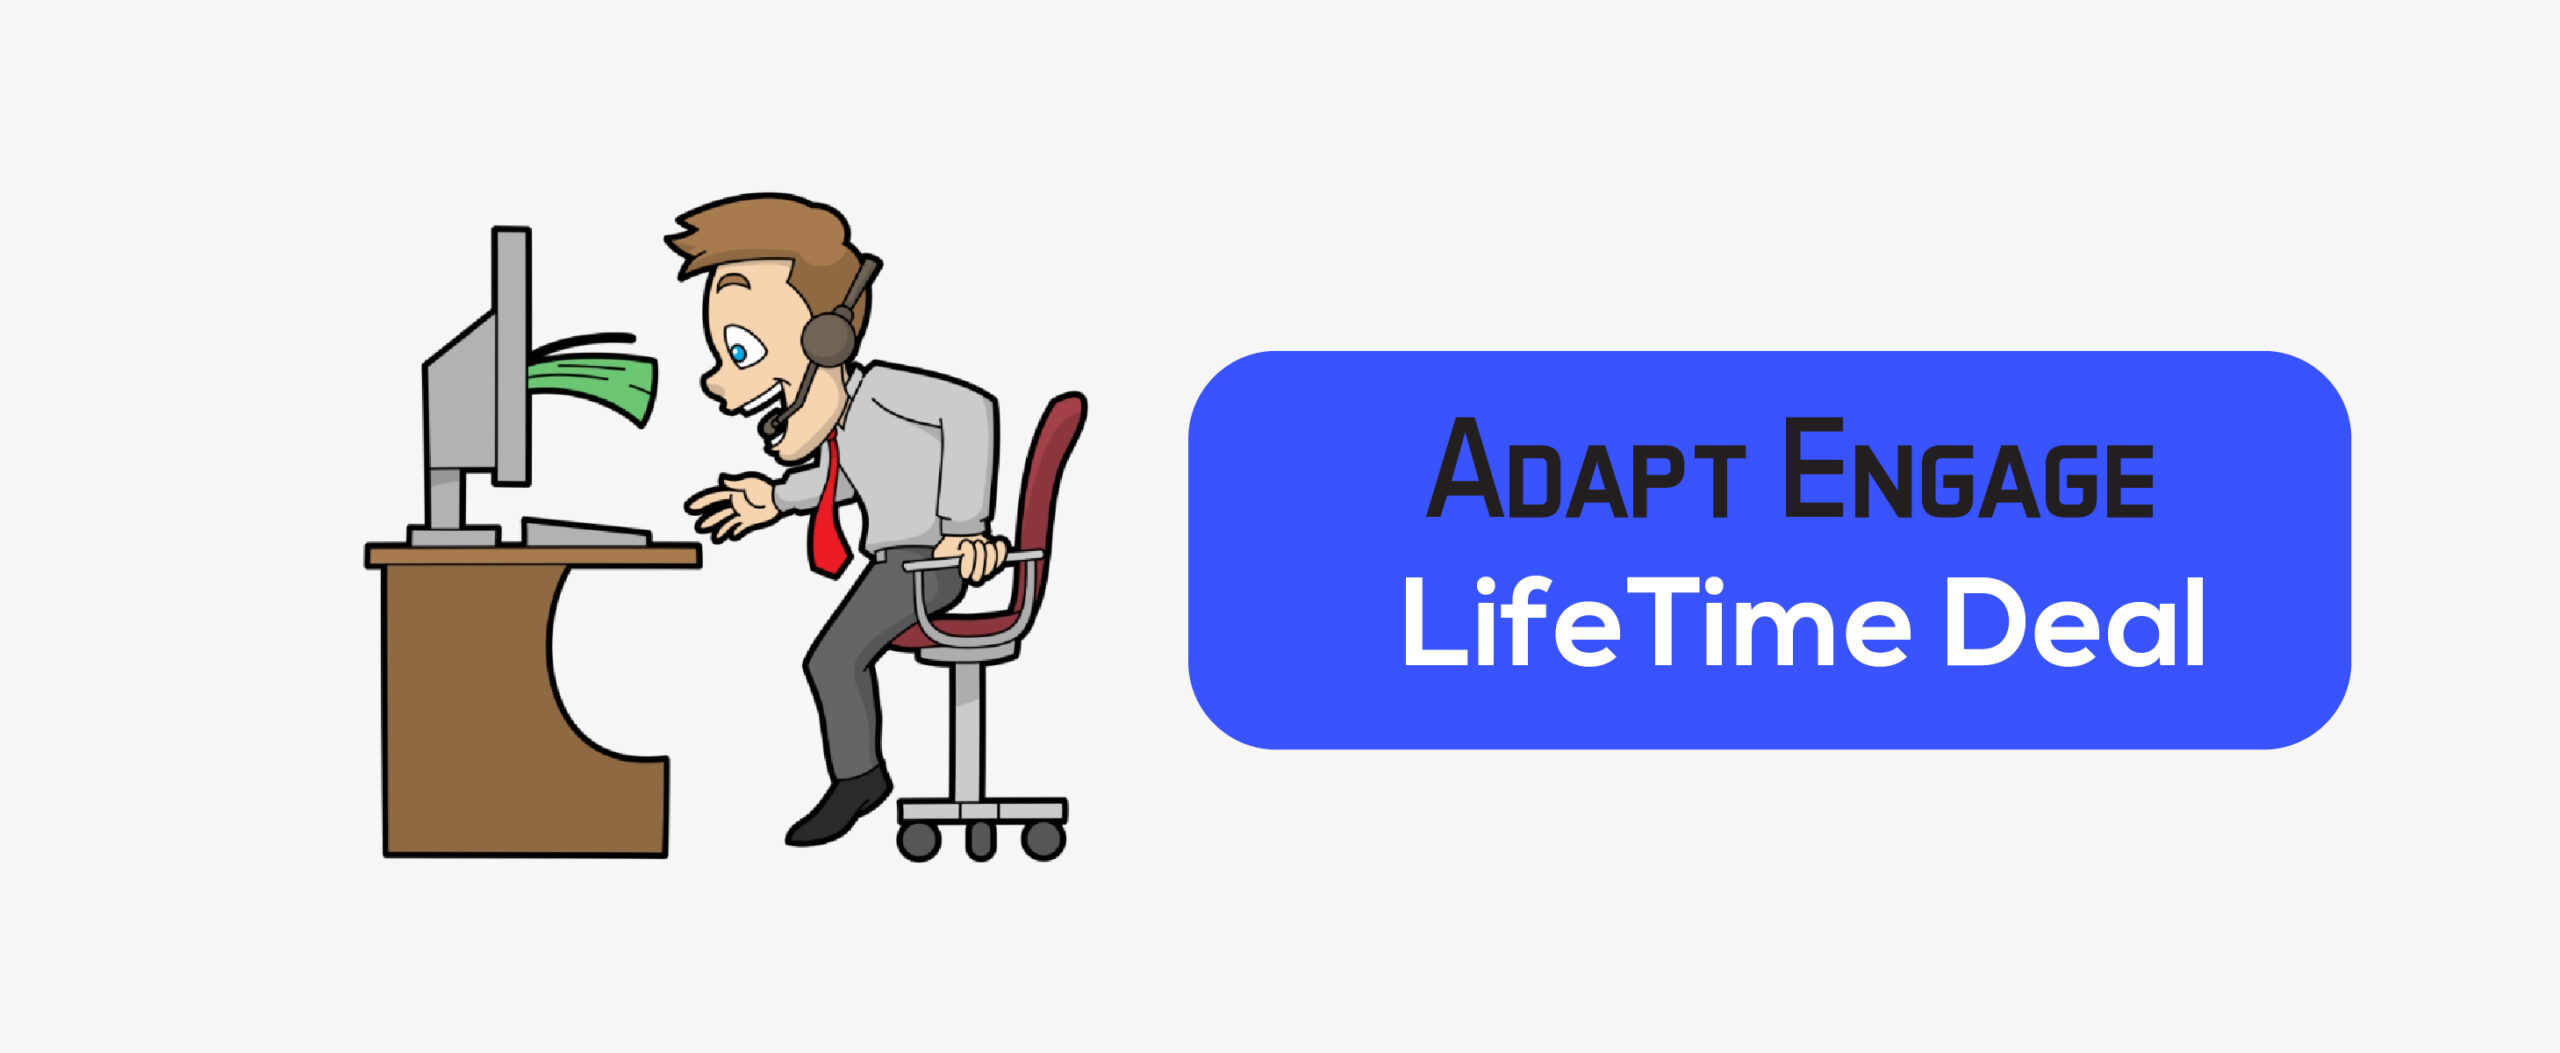 Adapt Engage Review and Details With Lifetime Deal 2021